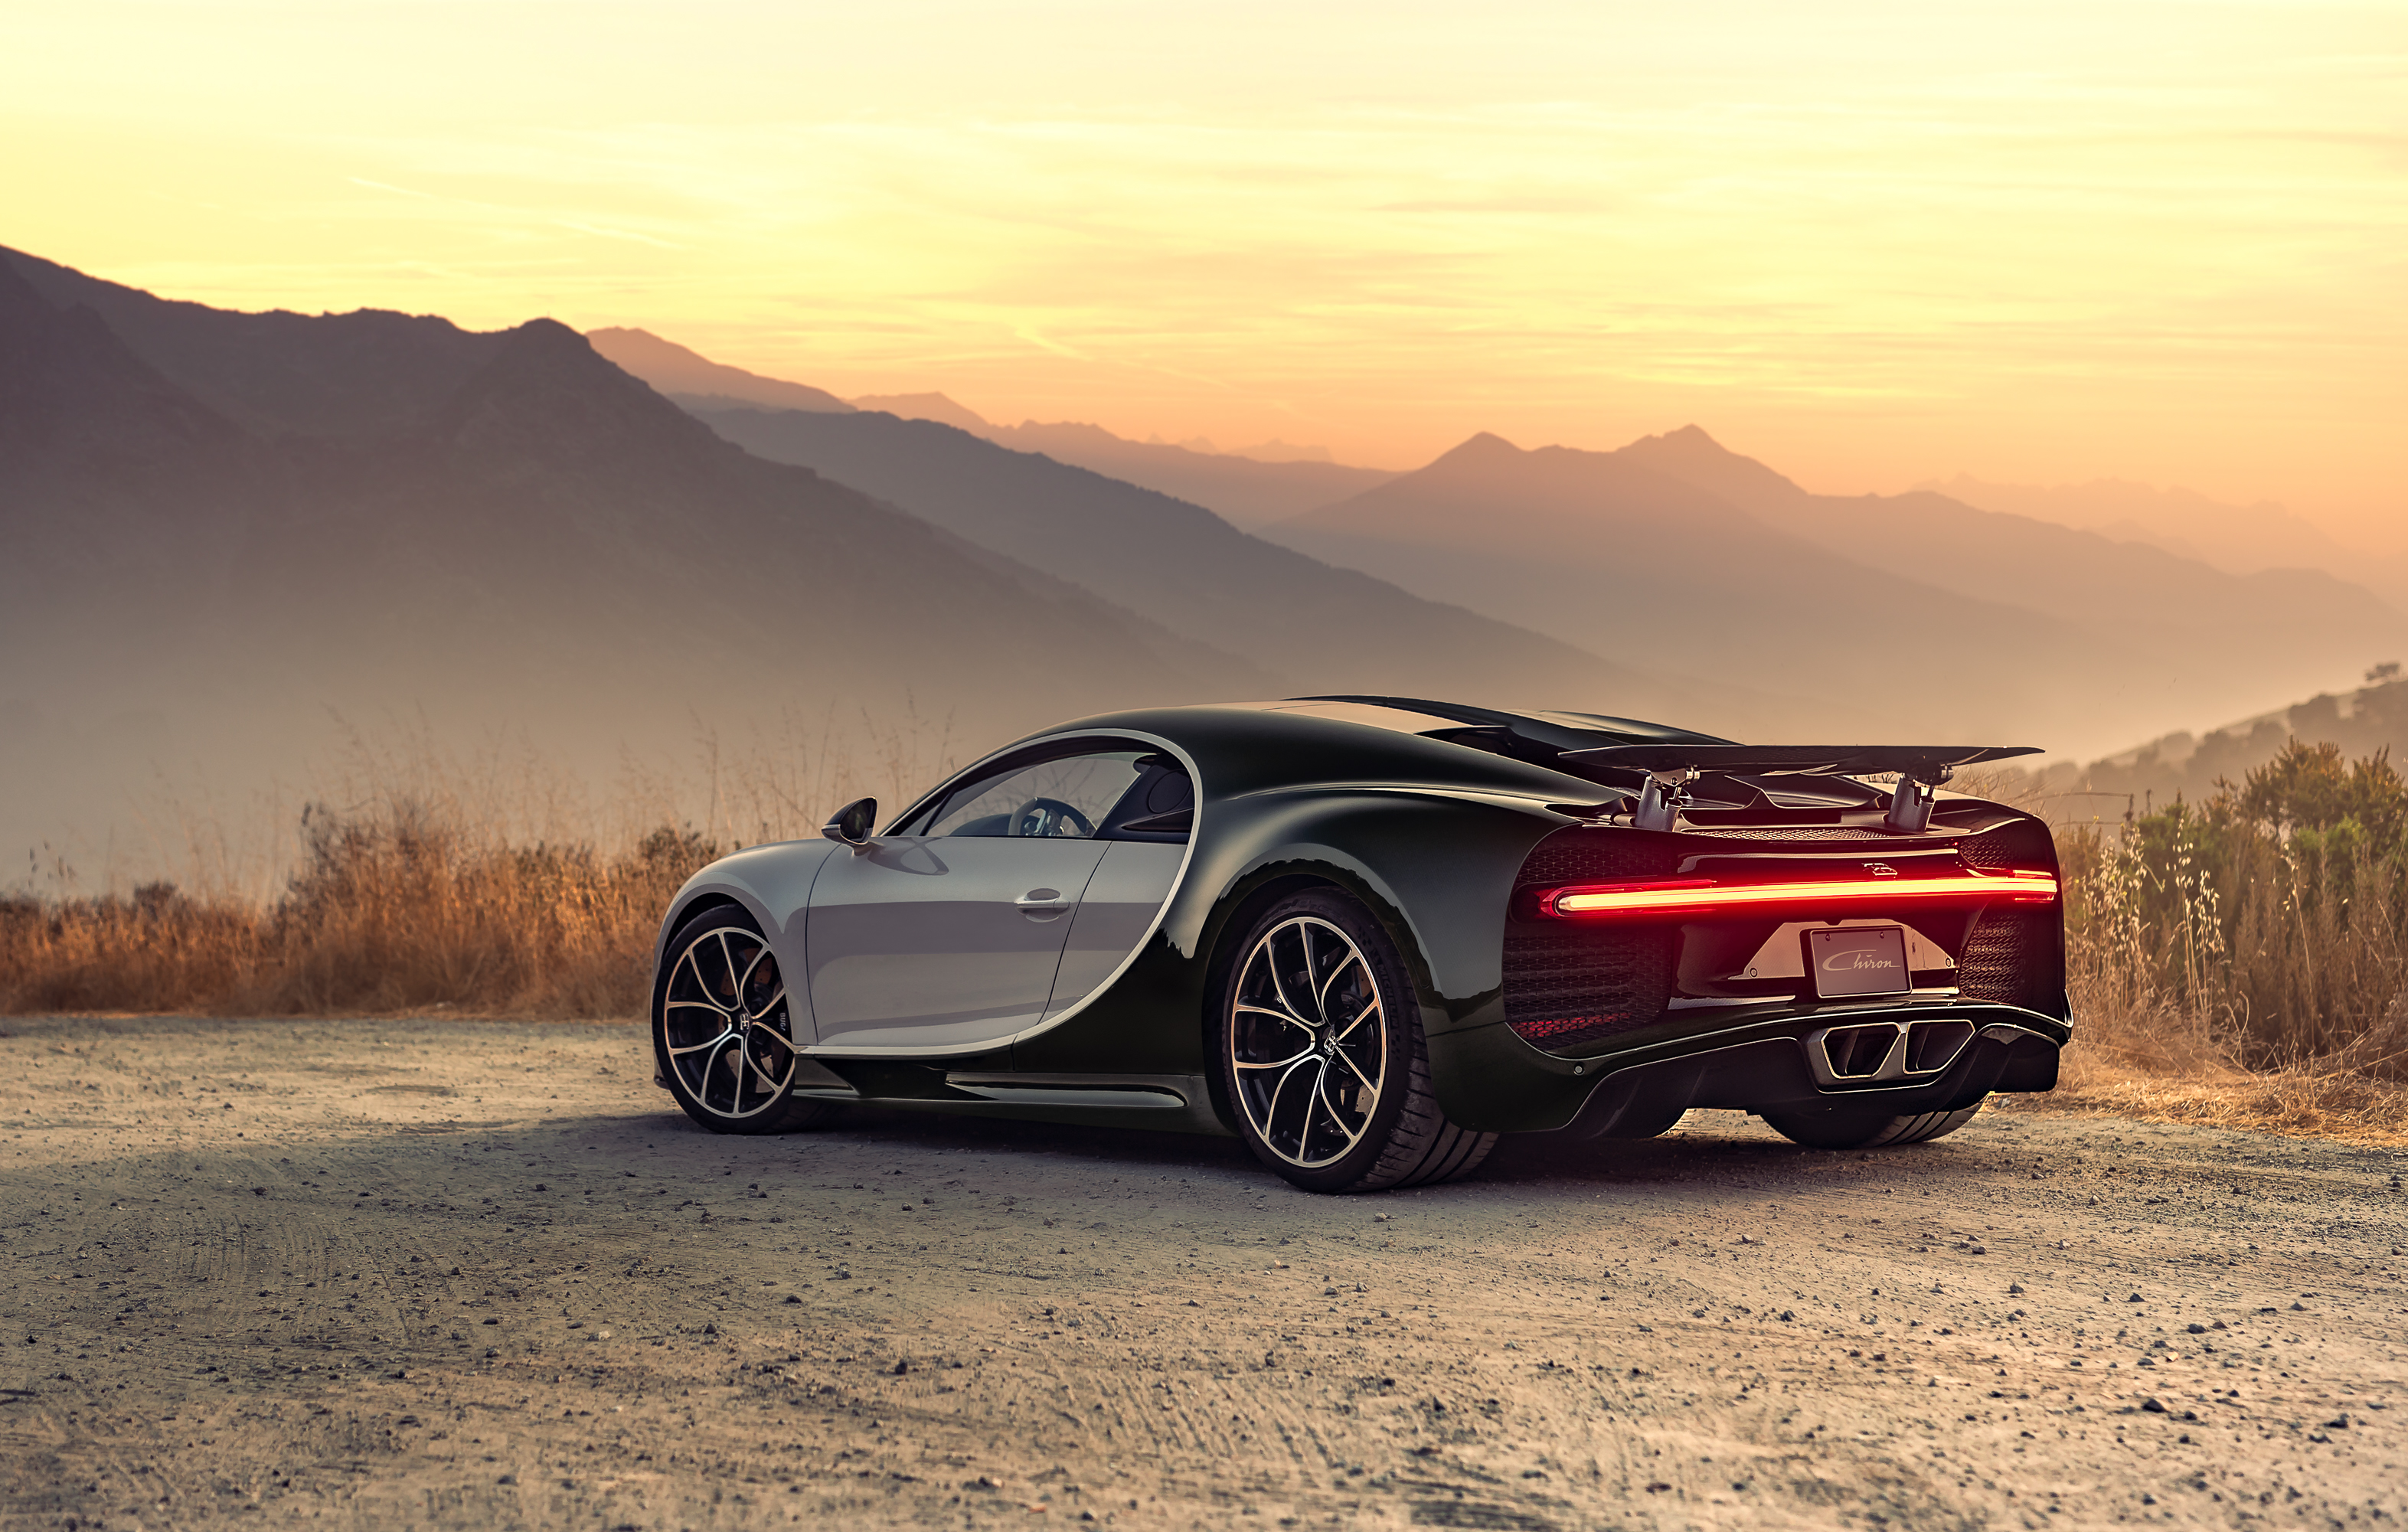 bugatti 4k chiron wallpapers rear cars hd supercar sunset 1080p laptop backgrounds desktop behance artist hypercar evening hdqwalls 8p 2259